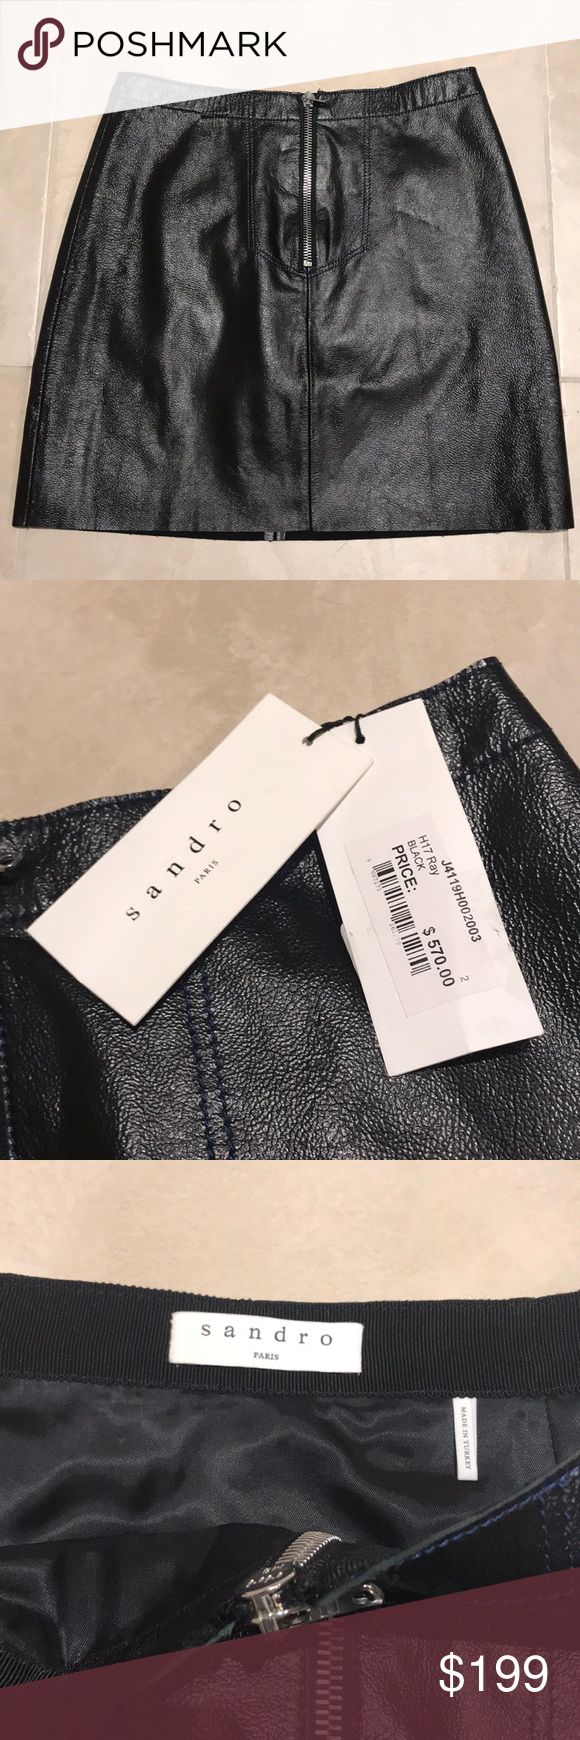 a668f30f60 Sandro Ray Leather Mini Skirt Never been worn, new Sandro Ray Leather Mini  Skirt!